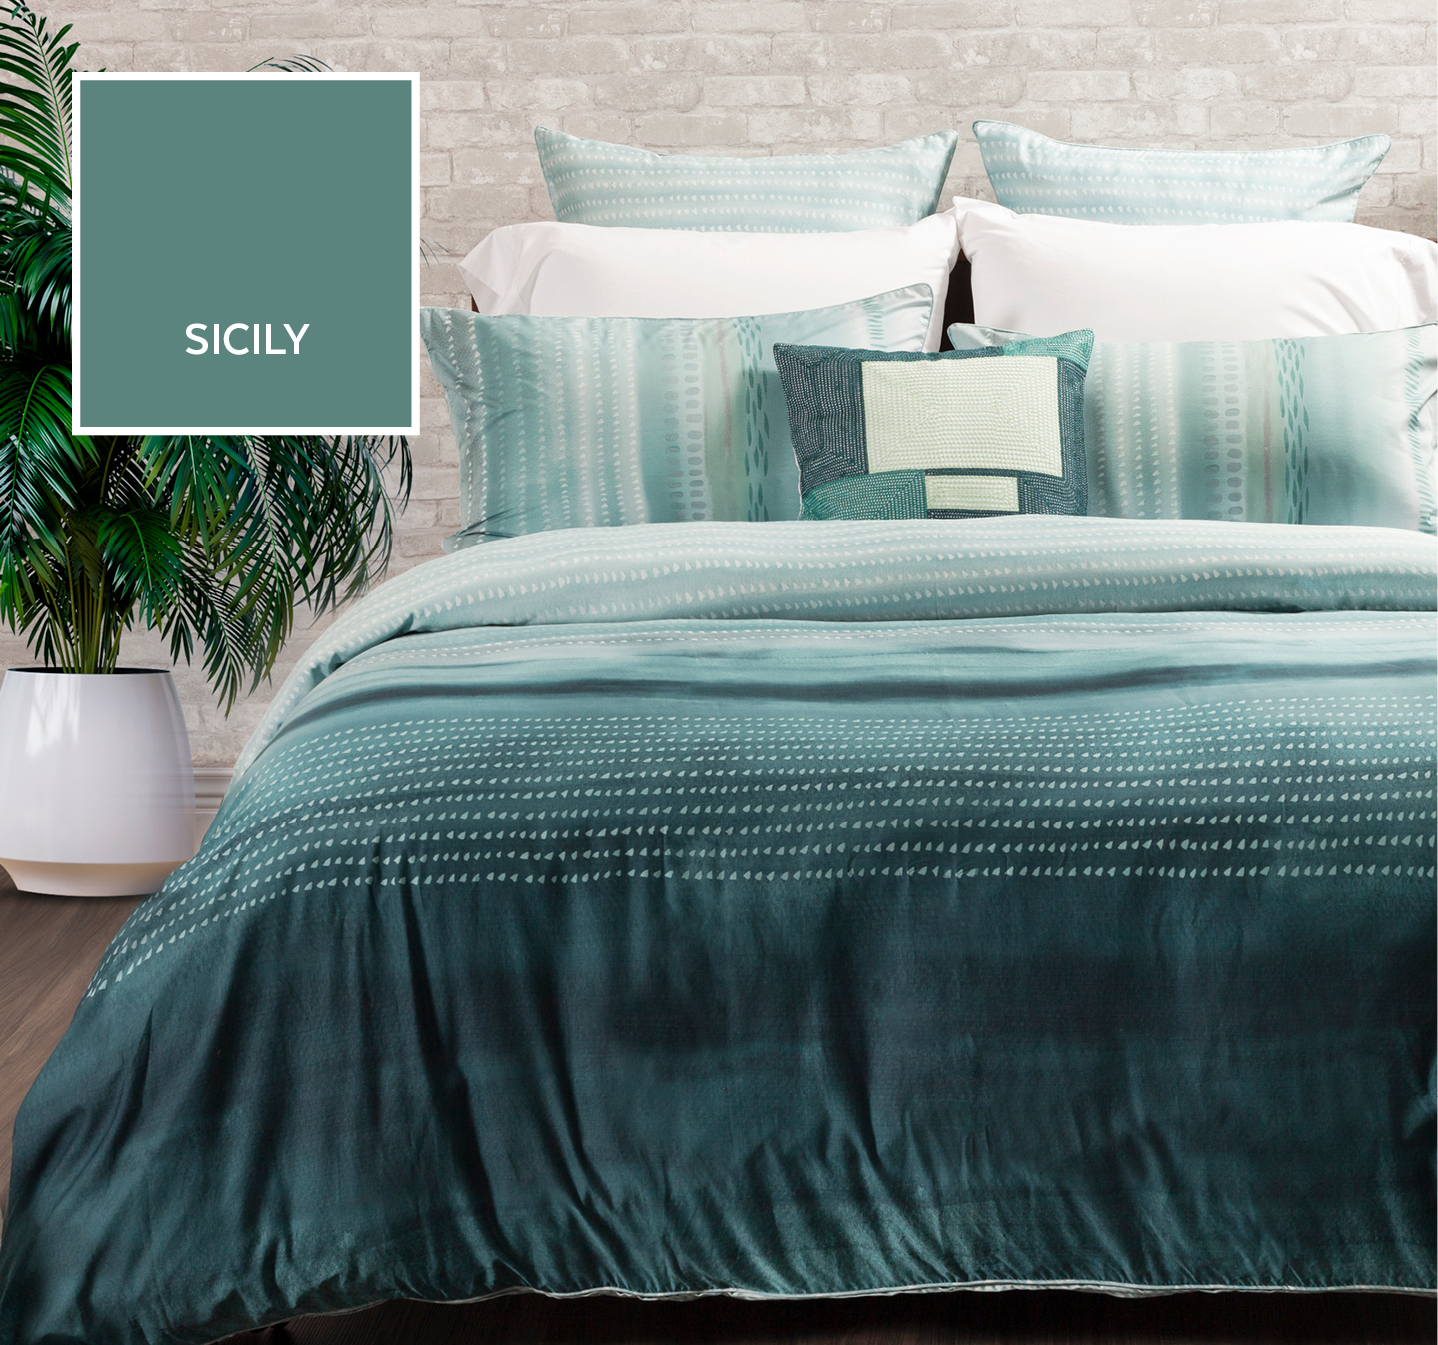 Sicily Green and Teal Duvet Cover